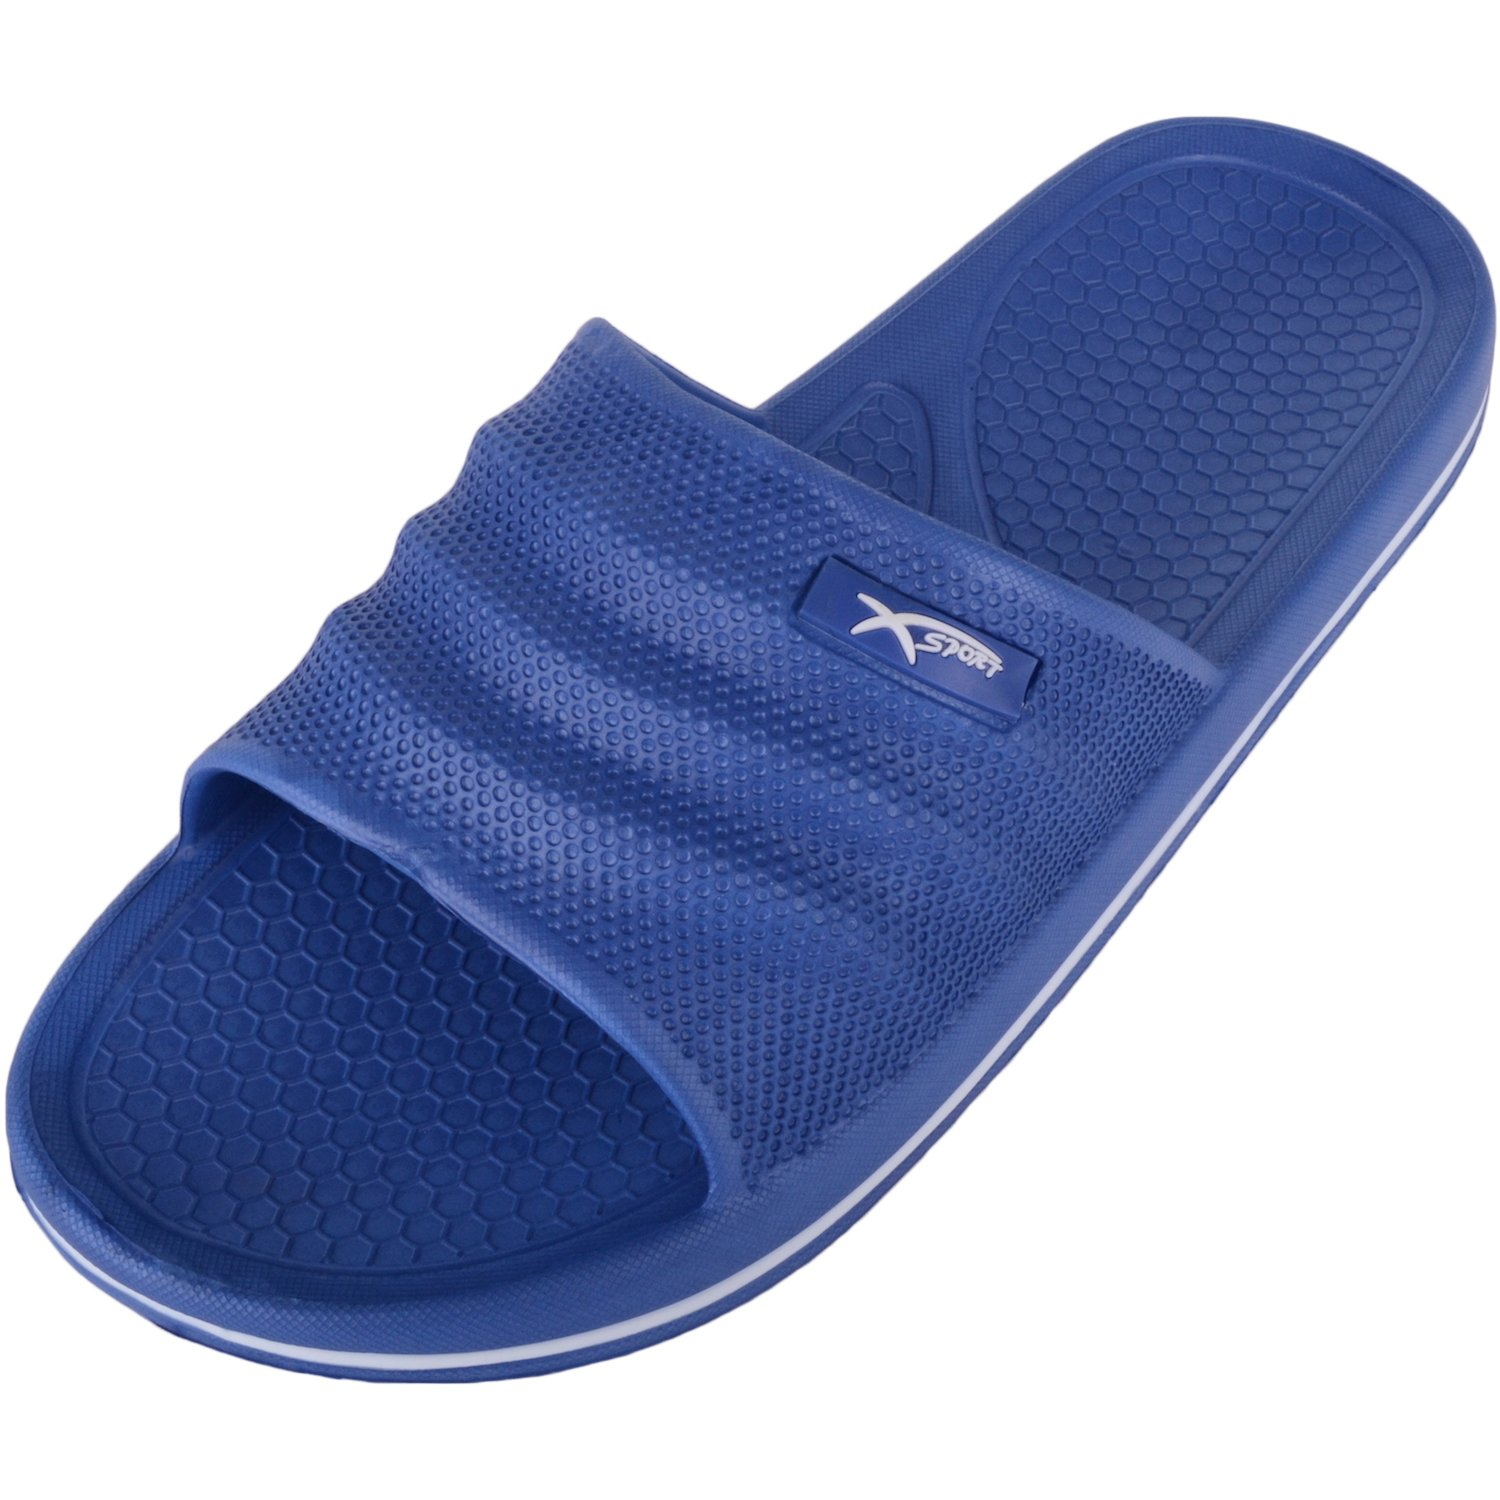 Absolute Footwear Mens Slip On Pool/Beach/Shower/Holiday Sandals/Flip Flops/Shoes